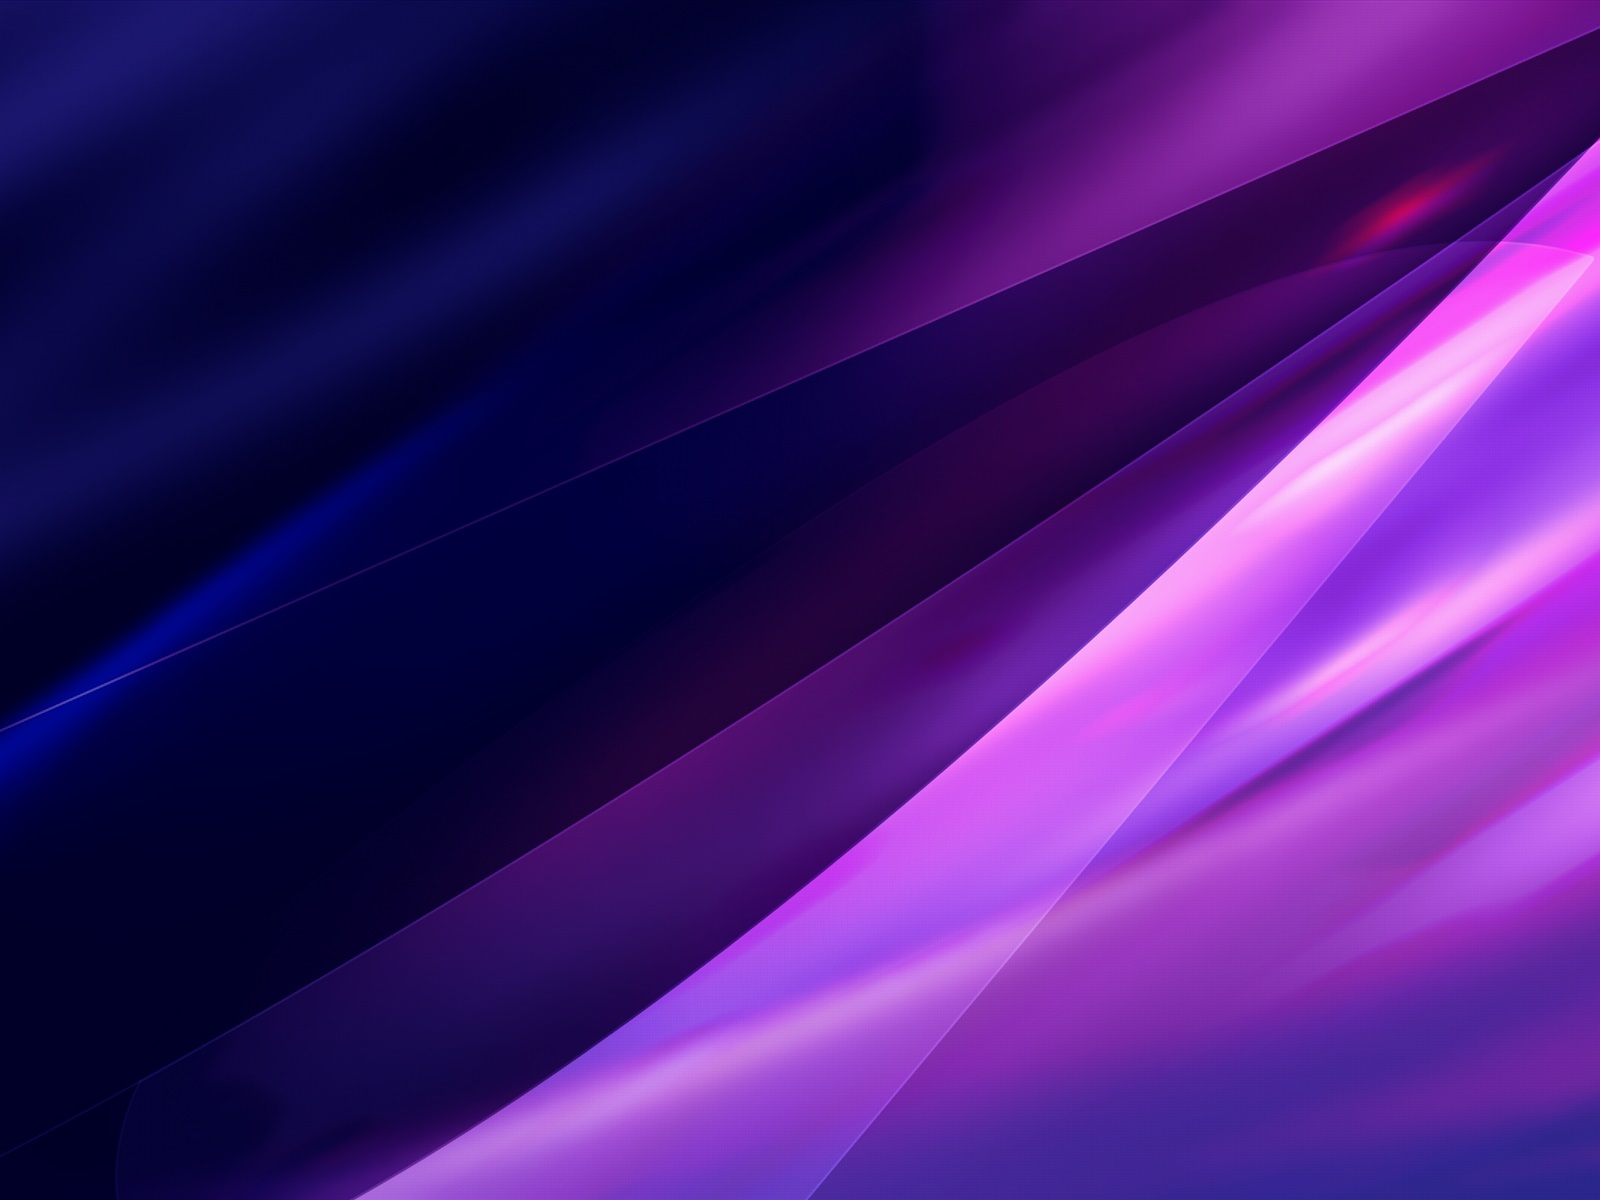 Wallpaper Purple Abstract Background, Light 2560x1600 HD